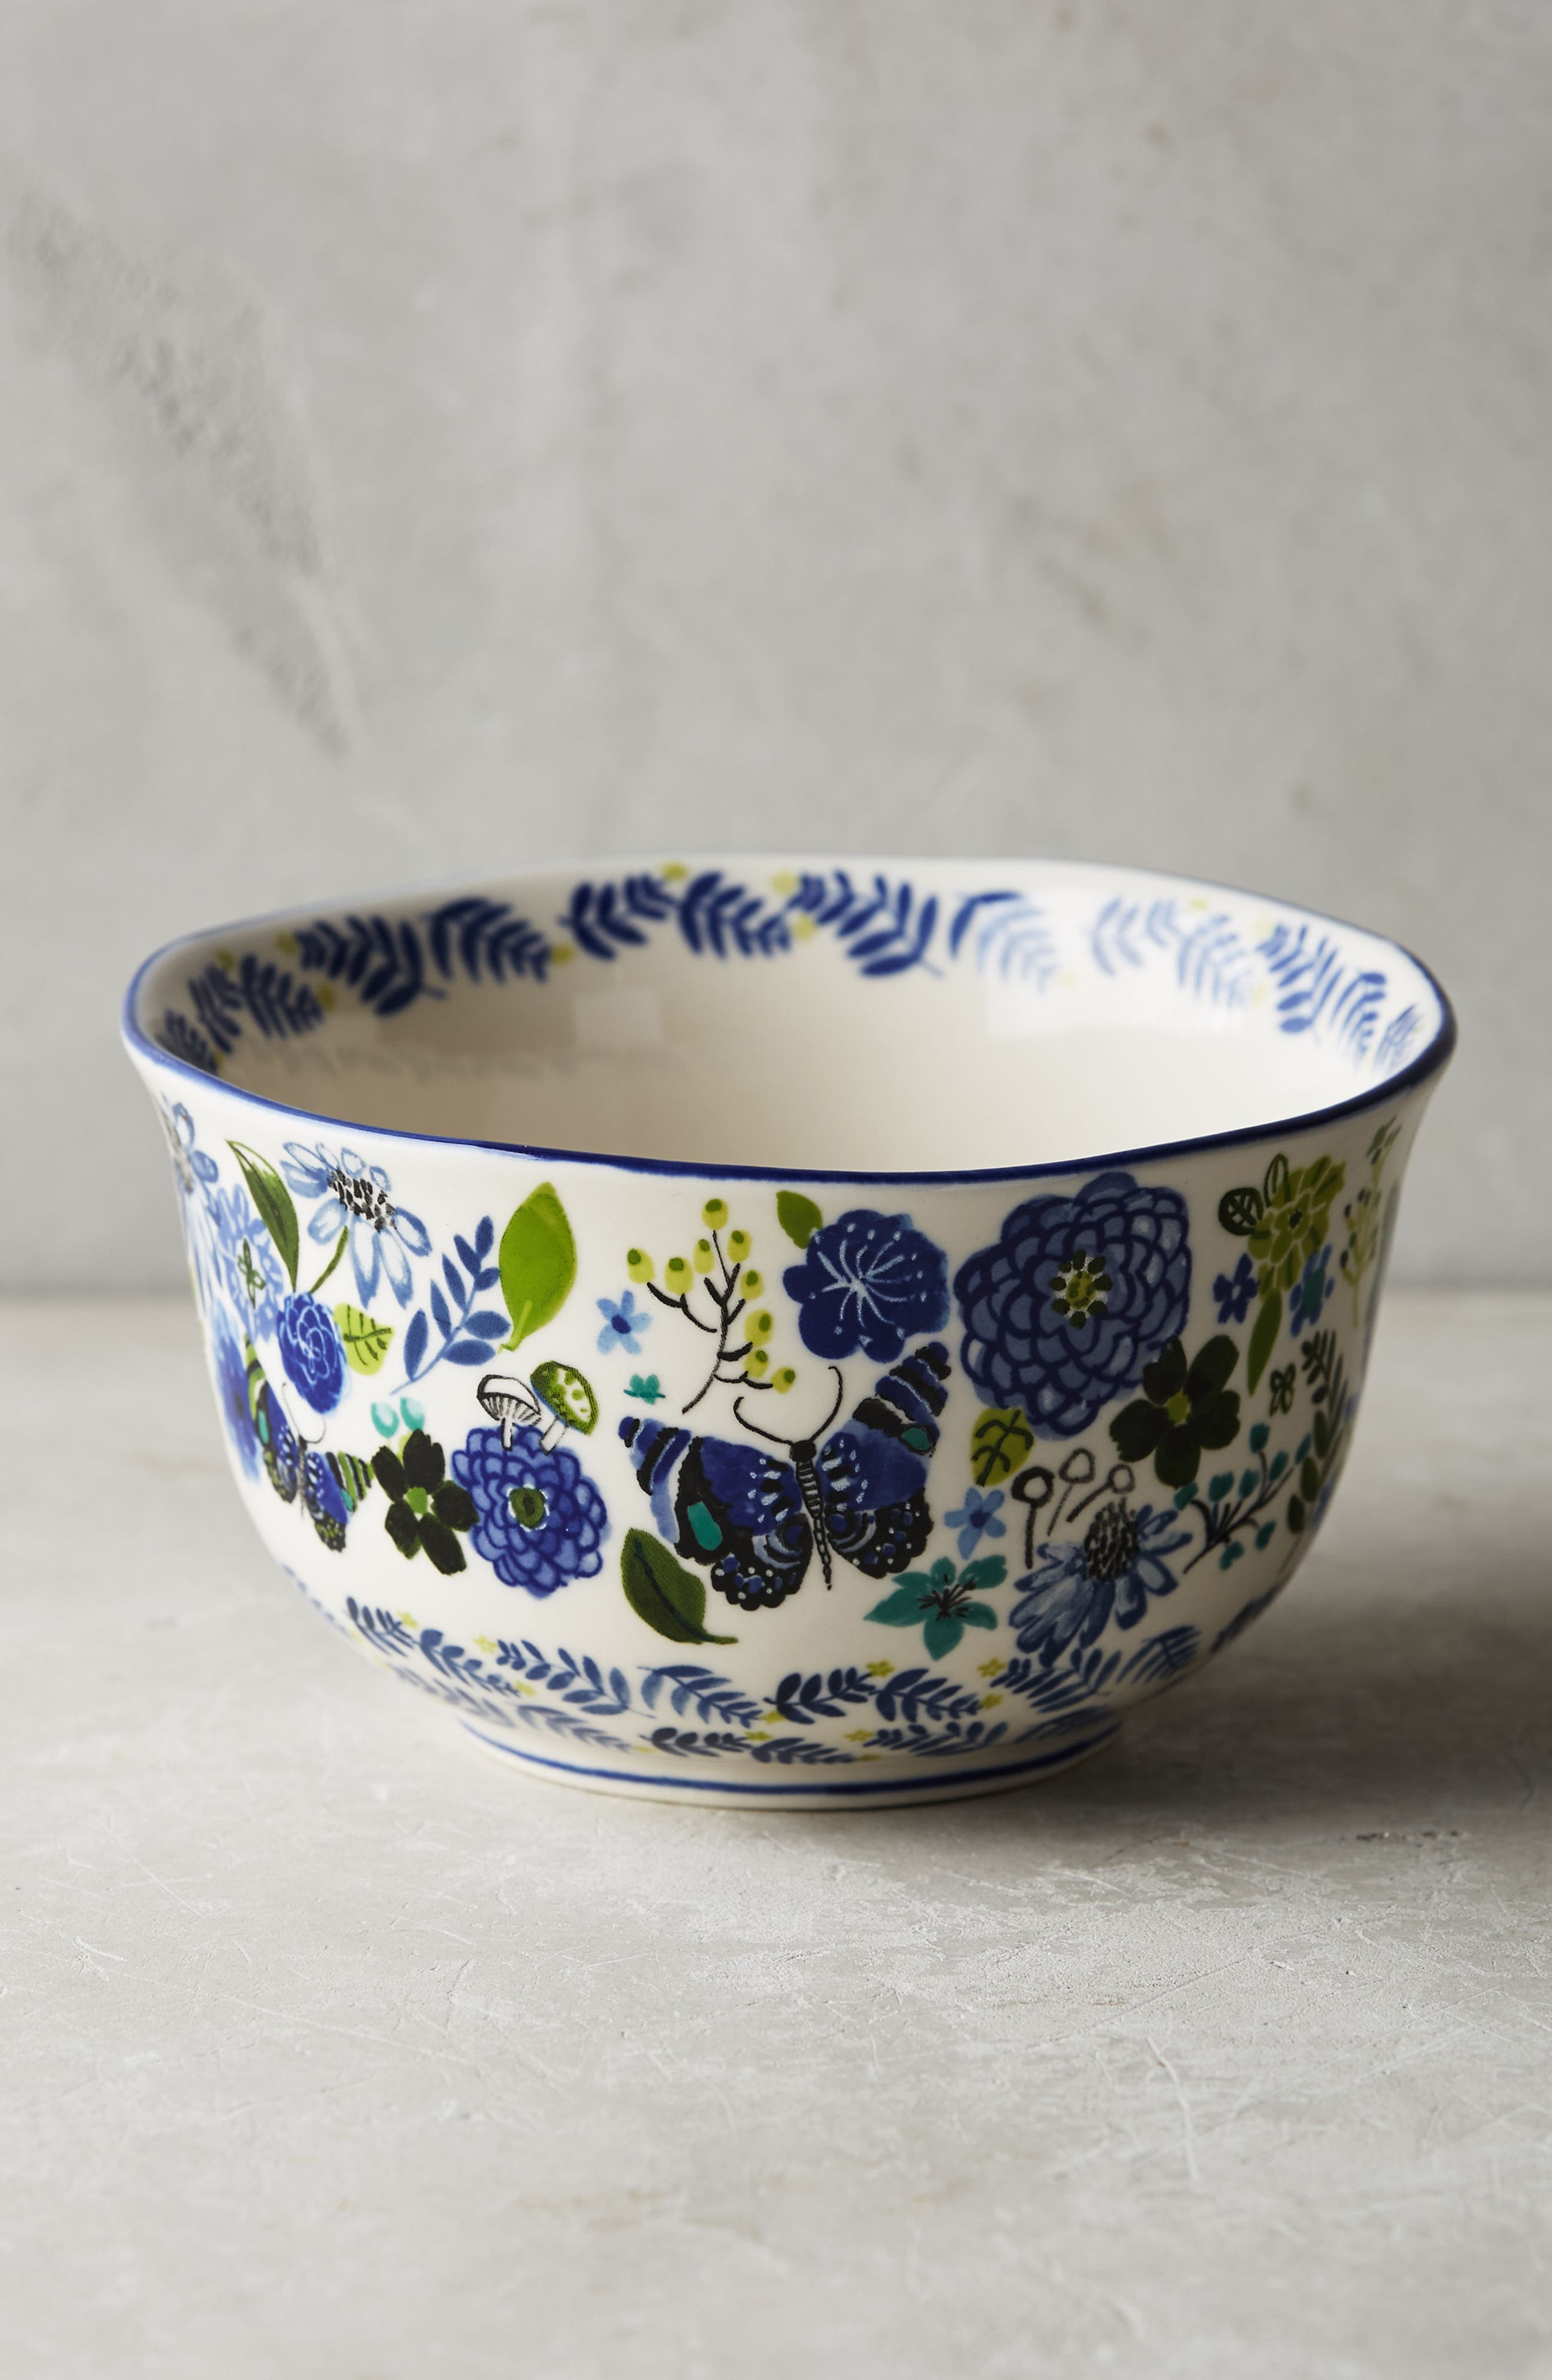 Wing & Petal Stoneware Bowl,                             Alternate thumbnail 2, color,                             400